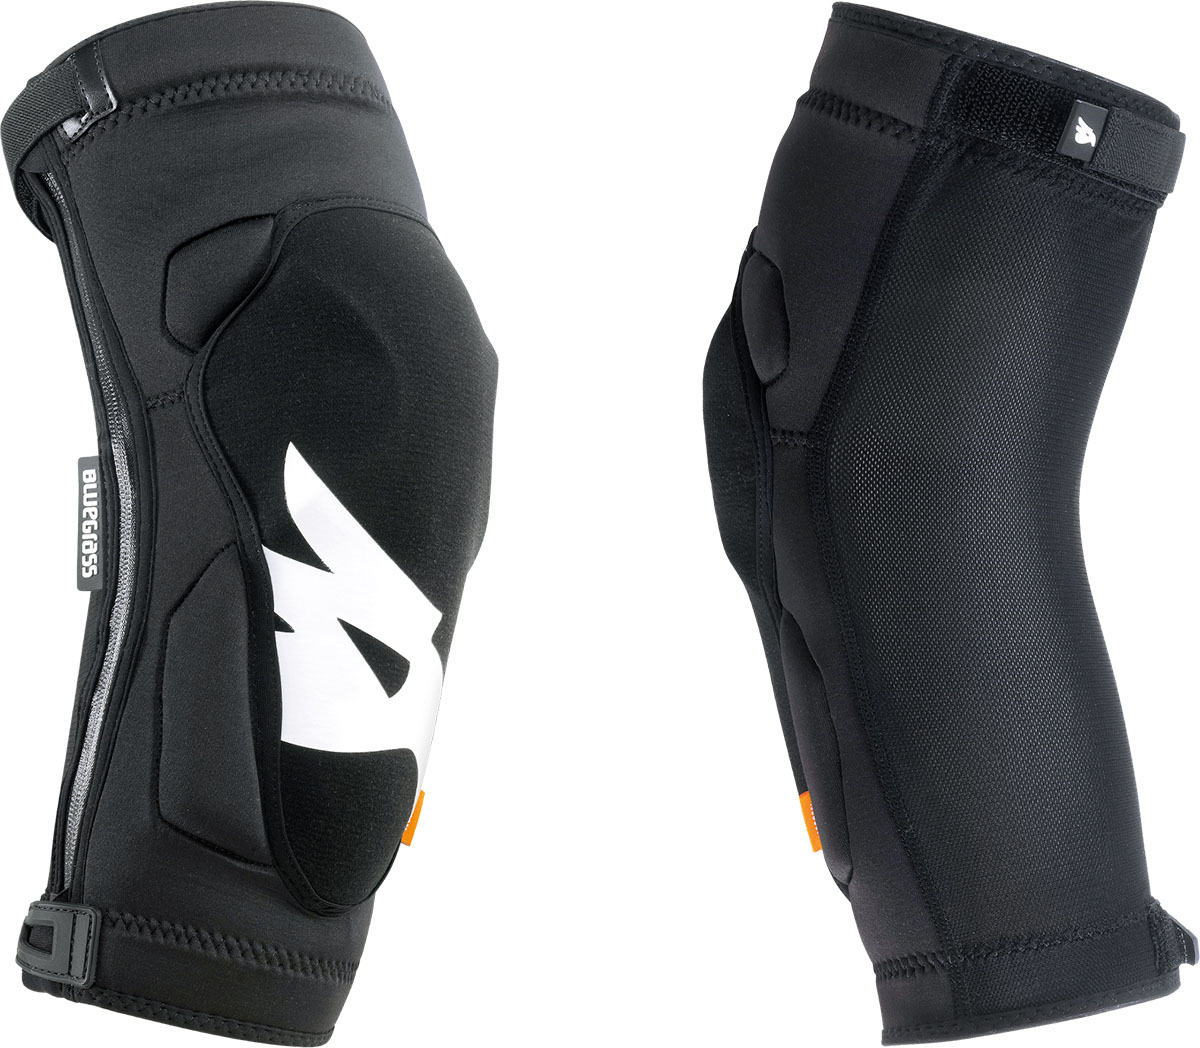 Bluegrass Solid D30 Knee Guards | Amour